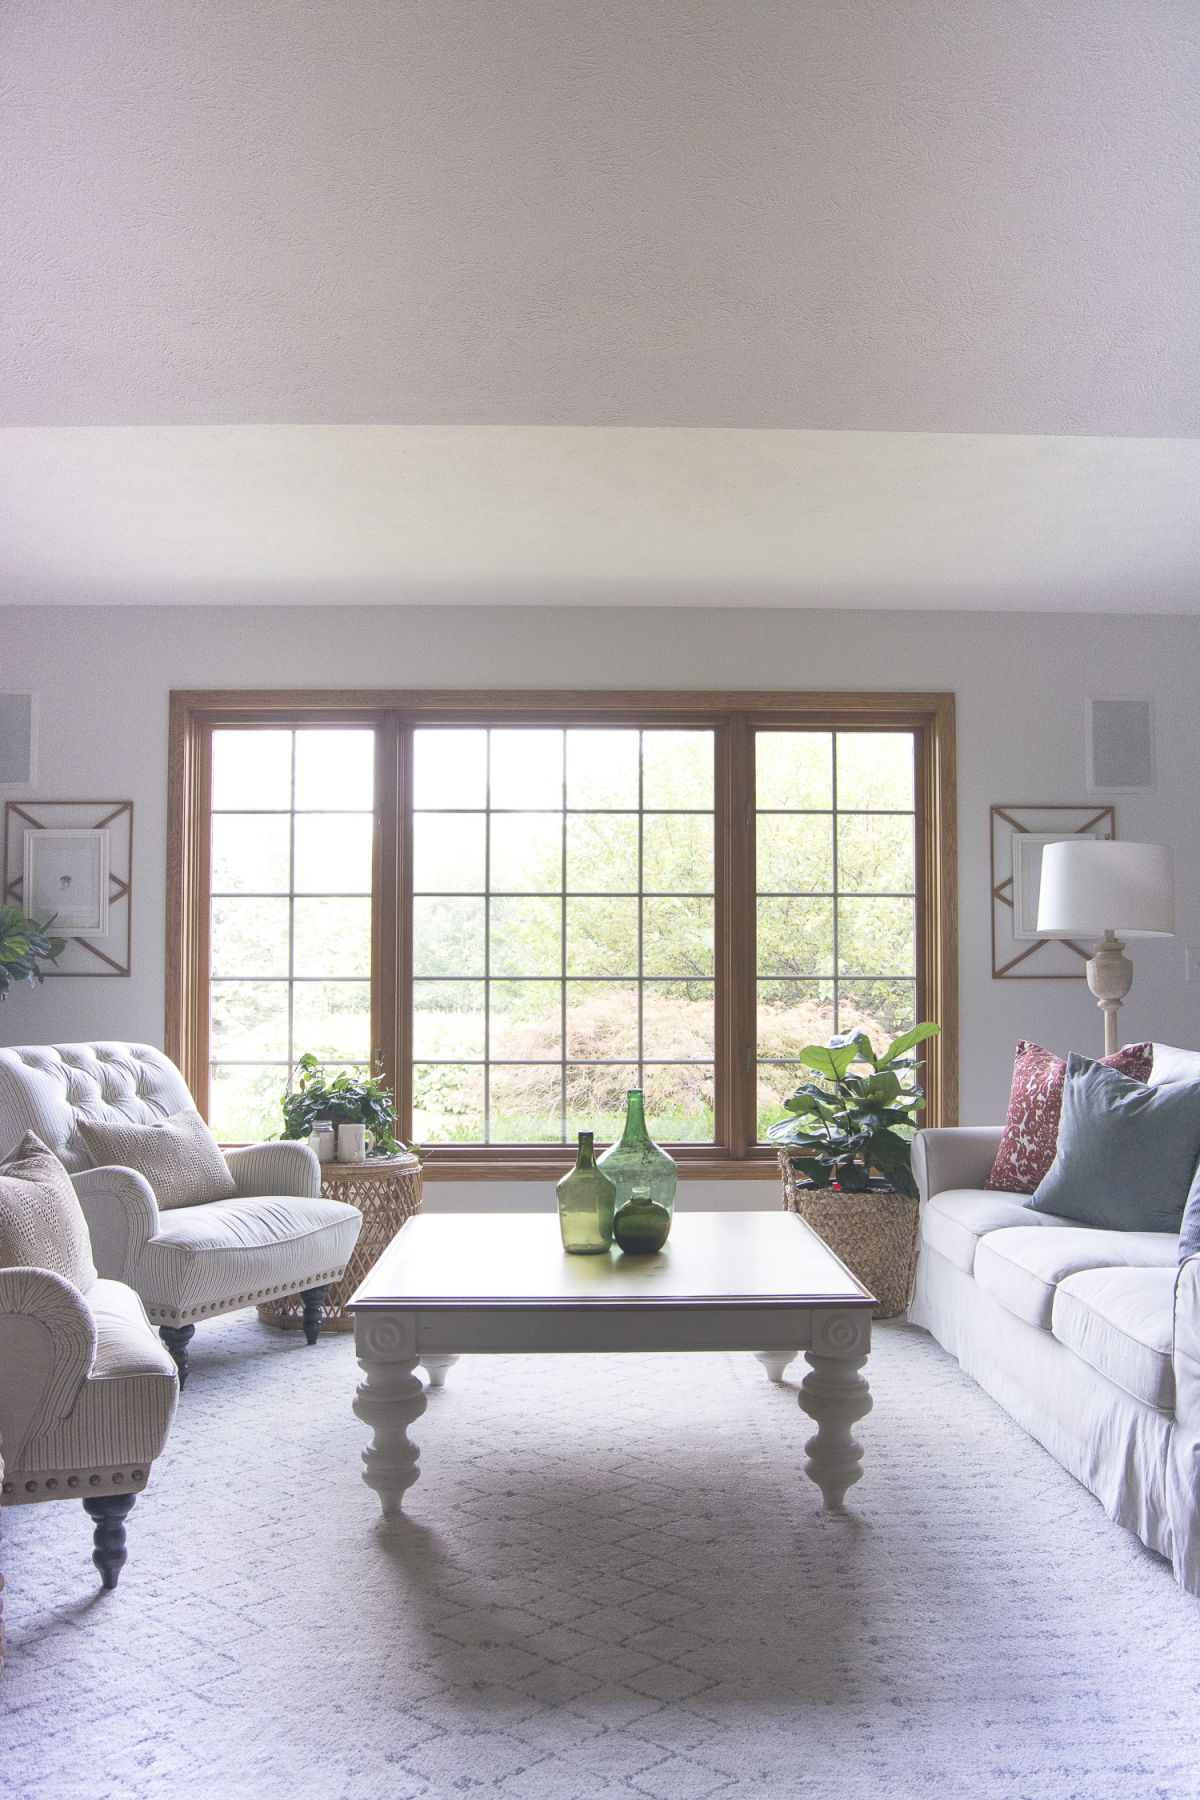 Vintage Farmhouse Decor | Living Room Update | Grace In My Space within Fresh Retro Living Room Decor